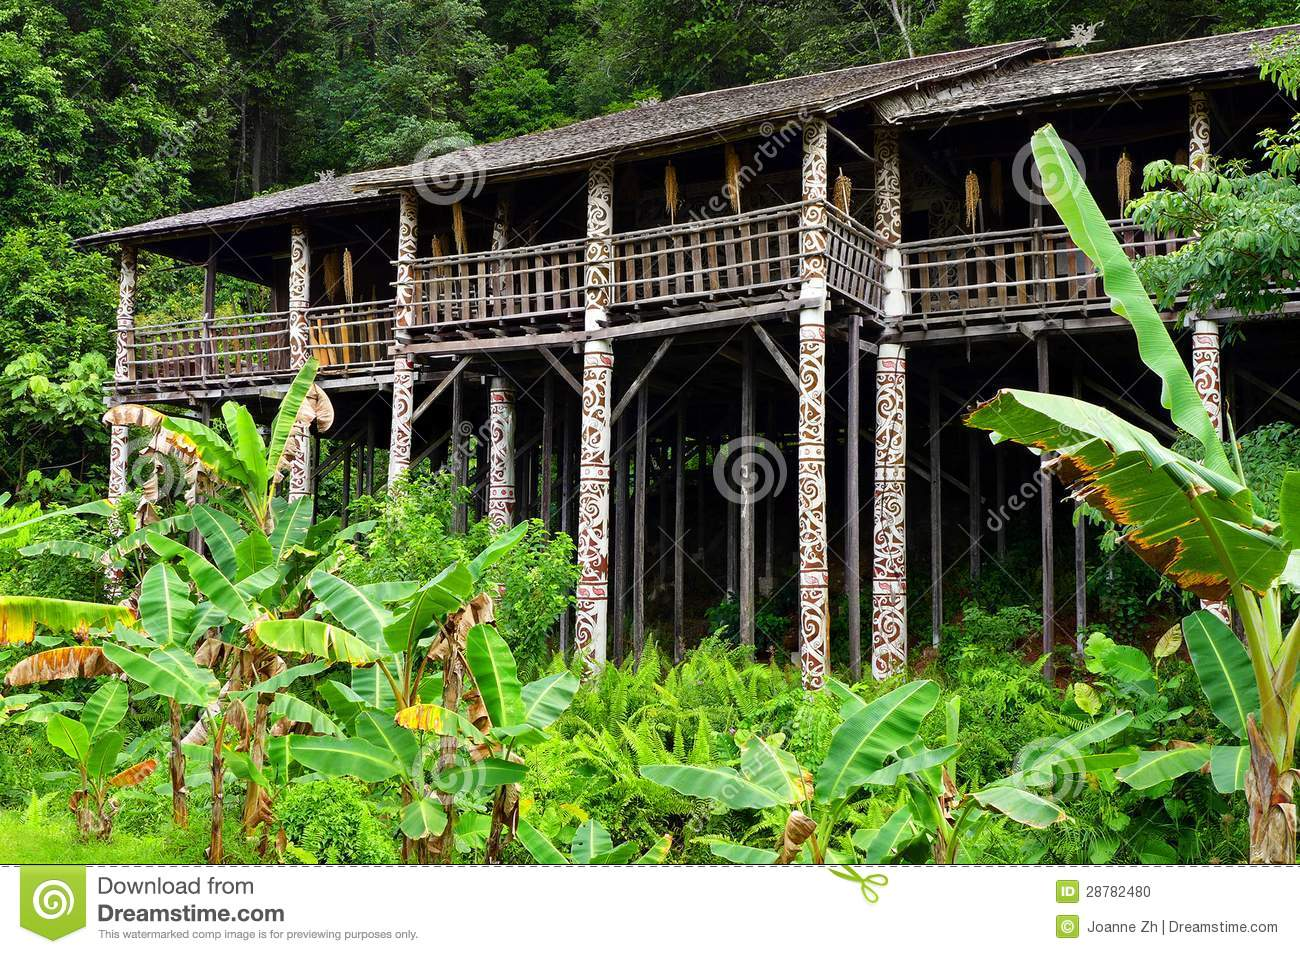 Borneo Sarawak Tribal Longhouse Architecture Stock Photo - Image ...